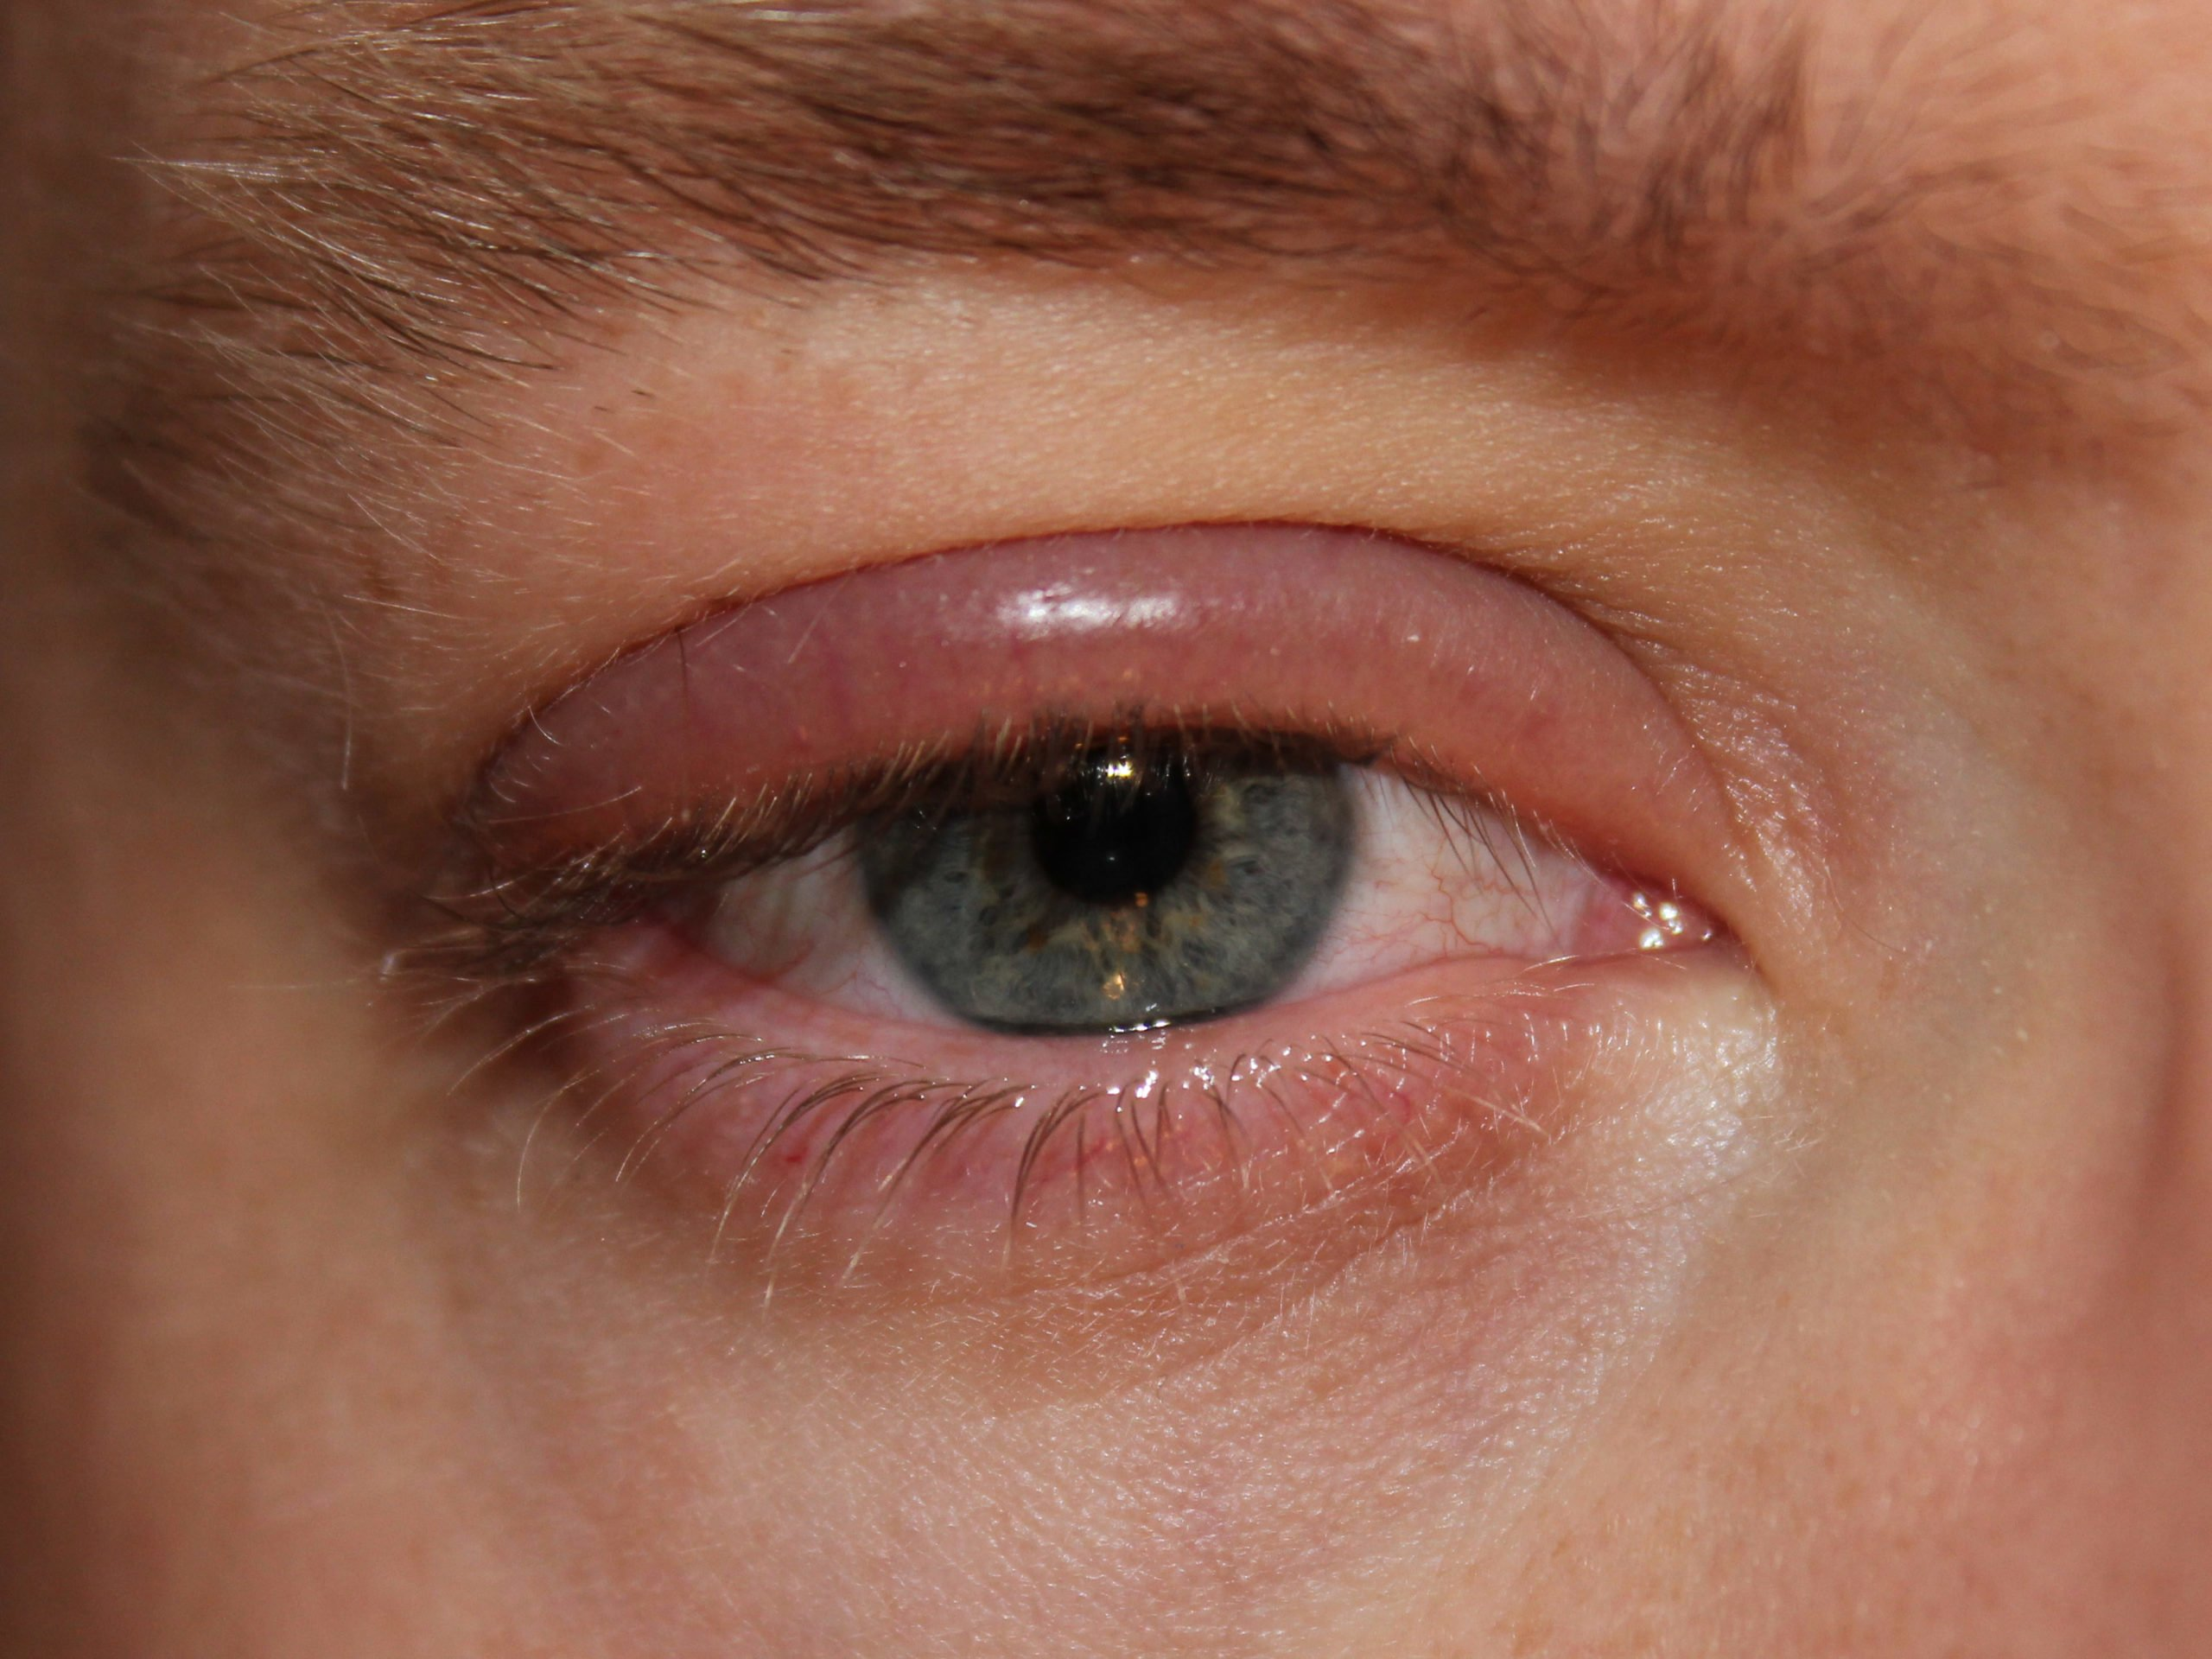 Coconut Oil for Pink Eye. On the other hand, viral conjunctivitis produces clear, watery secretions. Allergic conjunctivitis is usually caused by external factors like cosmetics, dust, pollens, and other allergens. This type of eye infection isn't contagious but causes discomfort because of the irritation and burning sensation in the eyes.